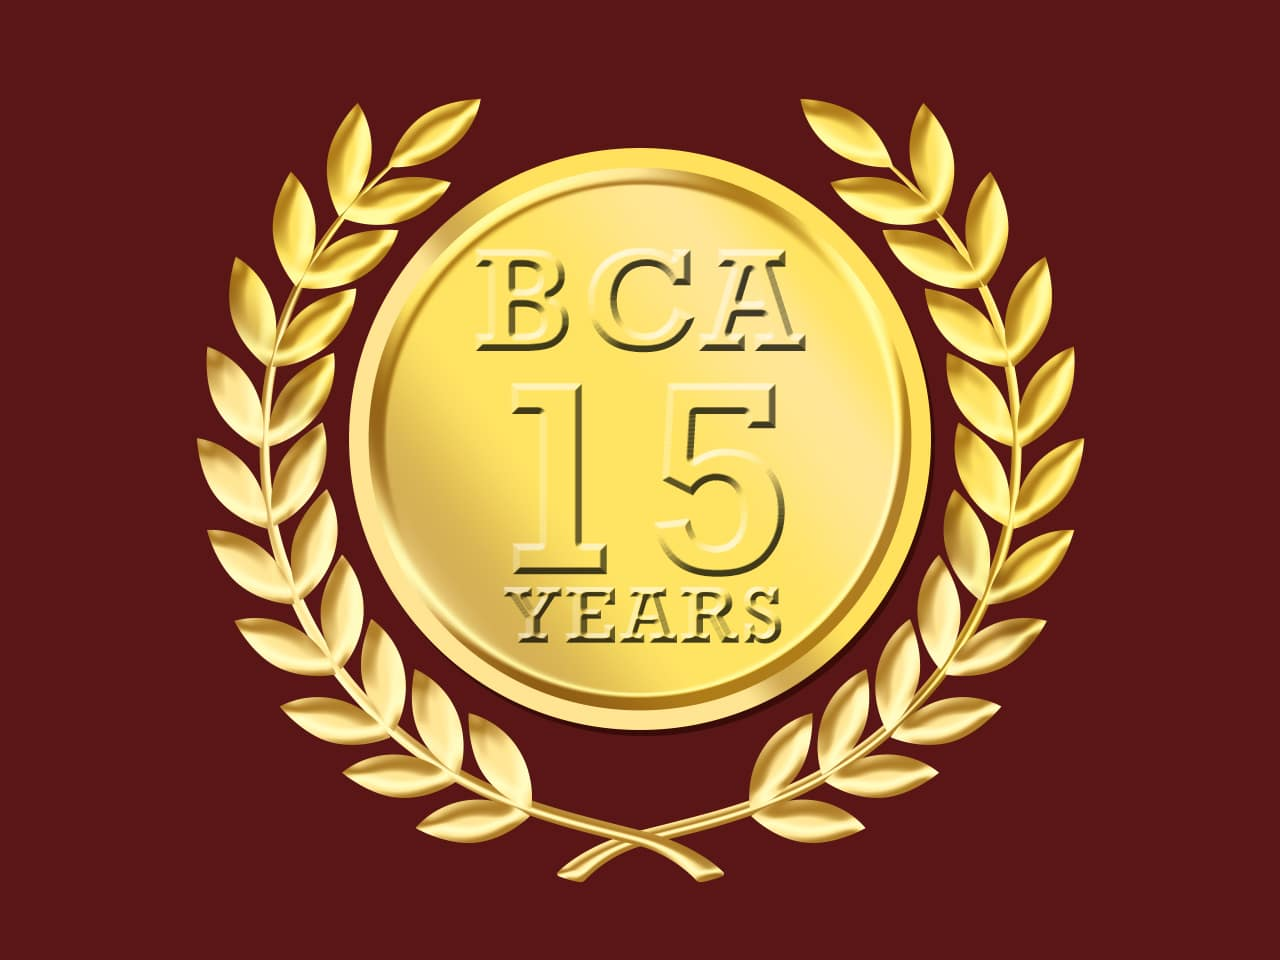 BCA – 15 Years of Excellence